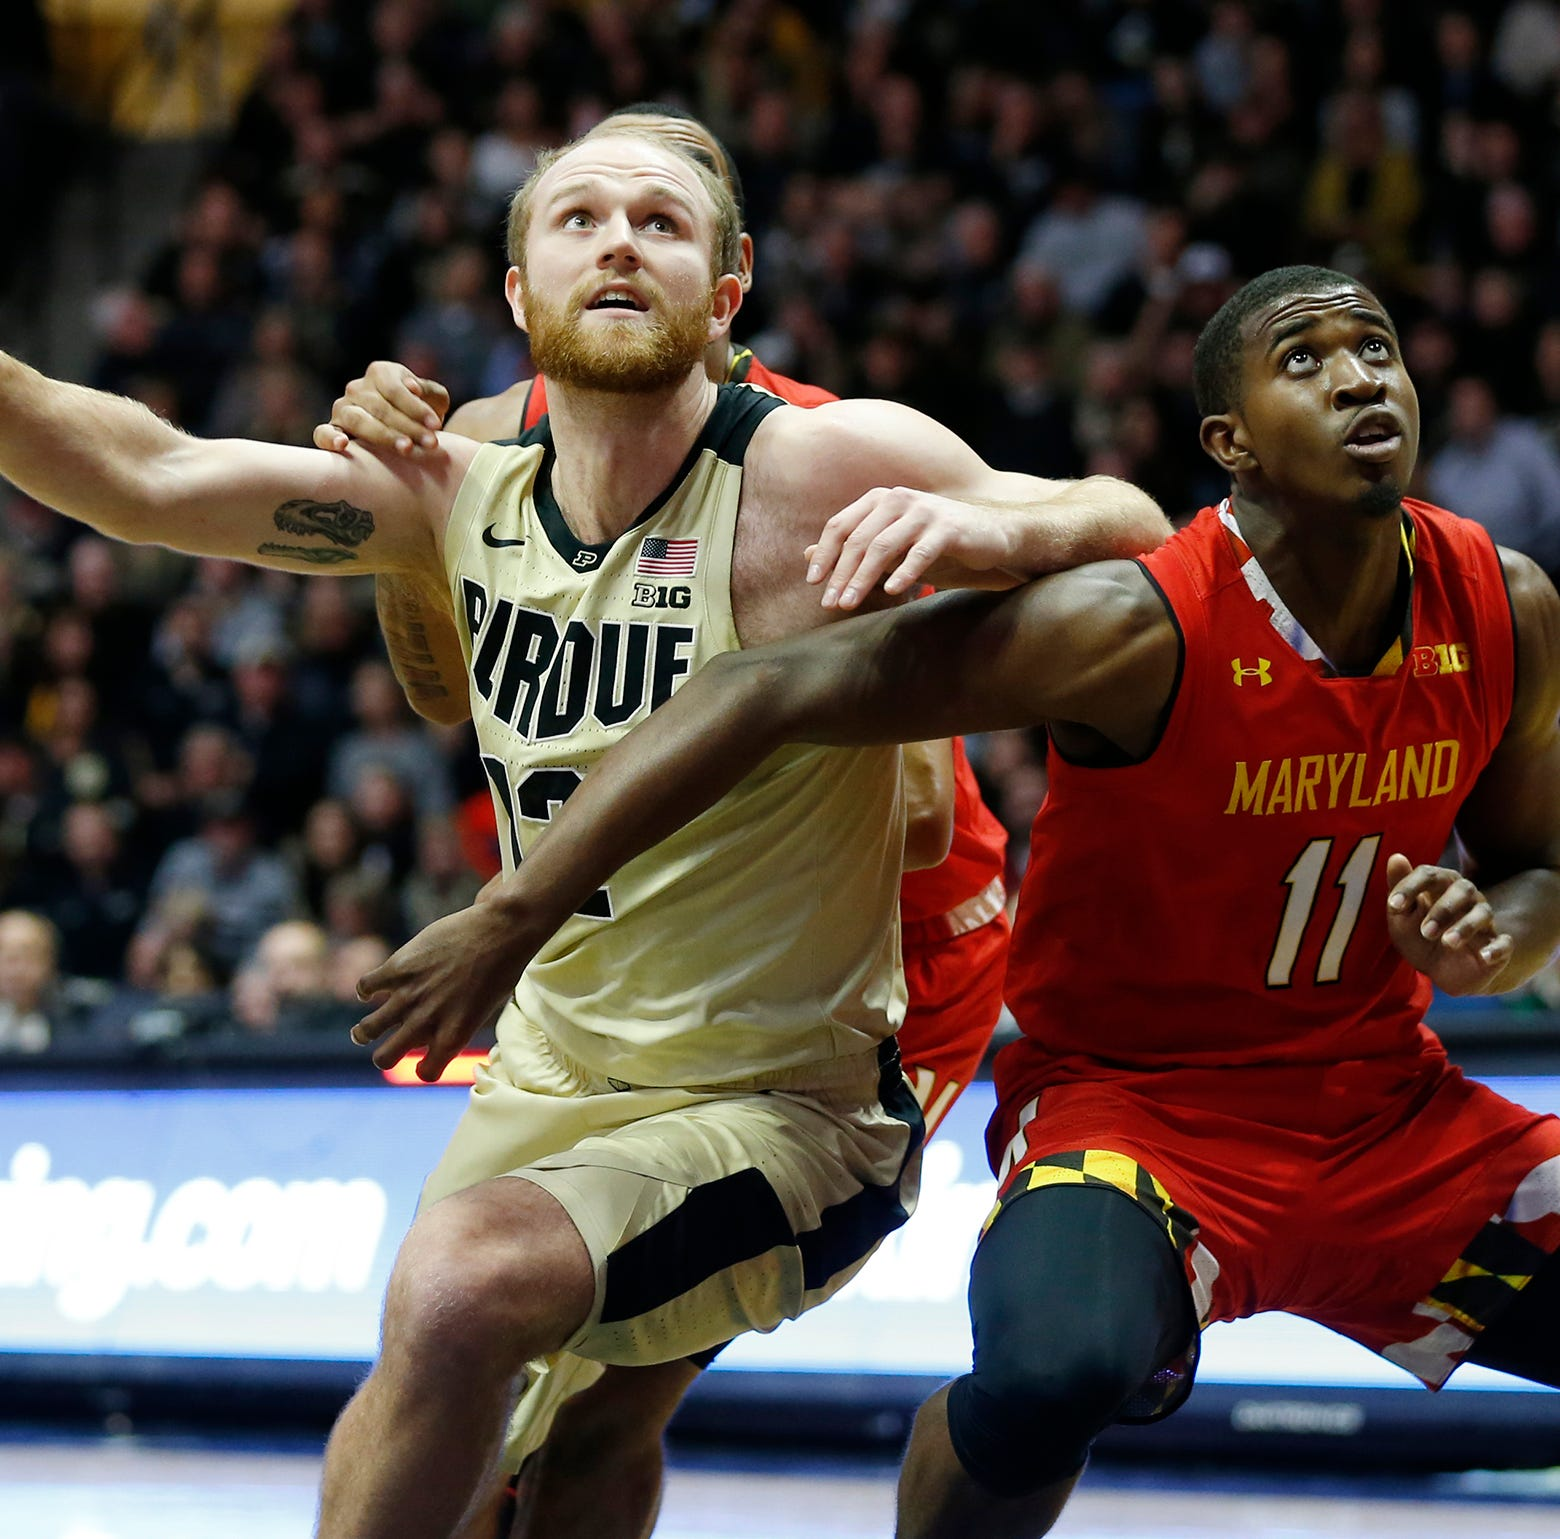 Purdue basketball's Grady Eifert and Evan Boudreaux growing into unexpected roles